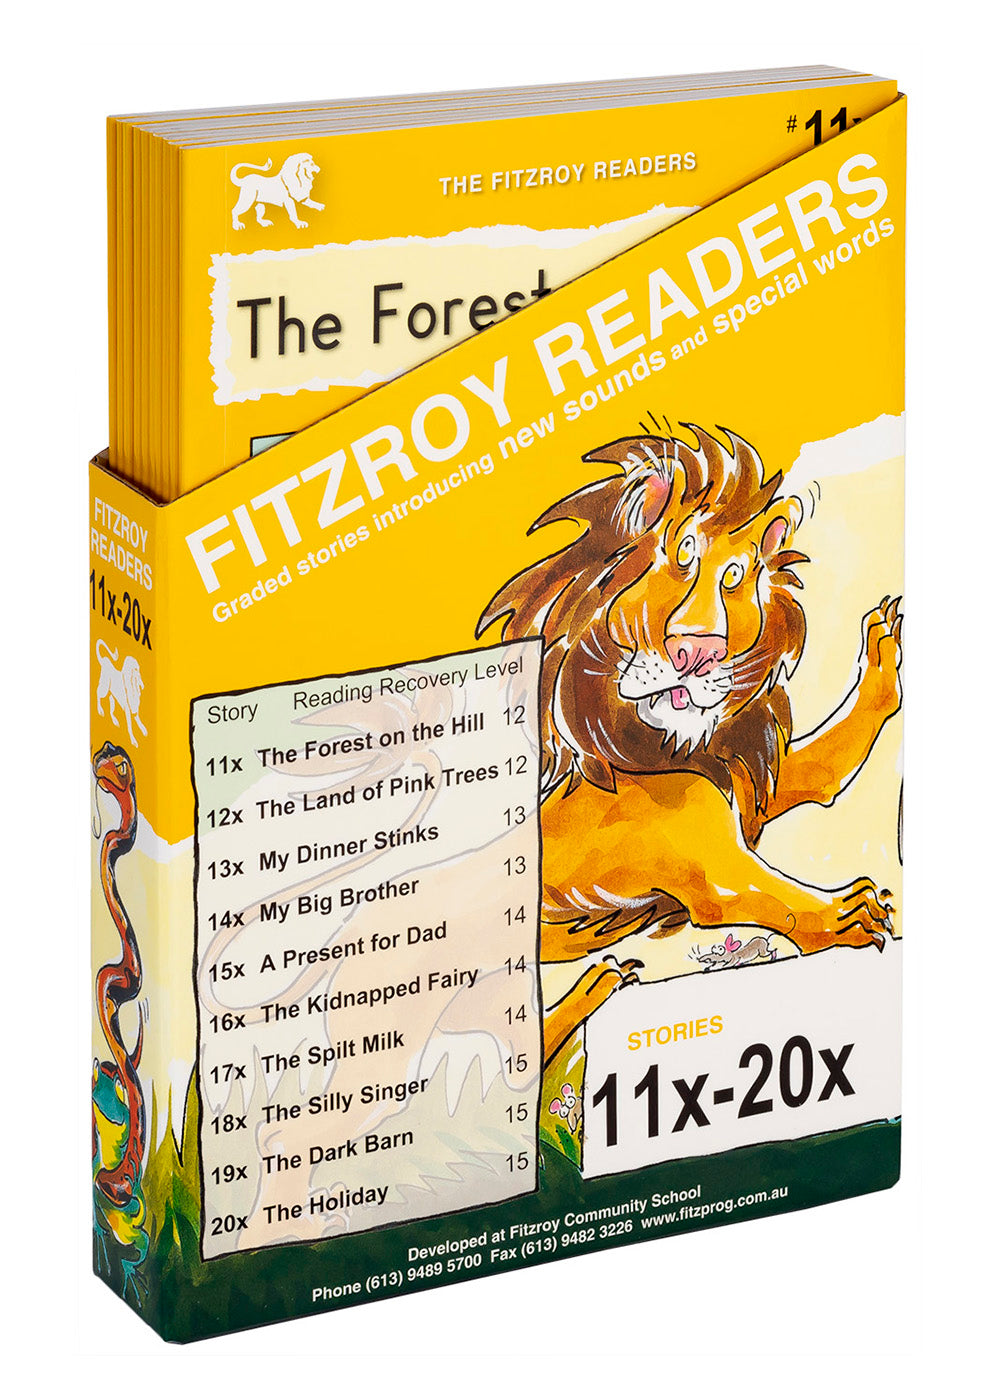 Fitzroy Readers 11x-20x